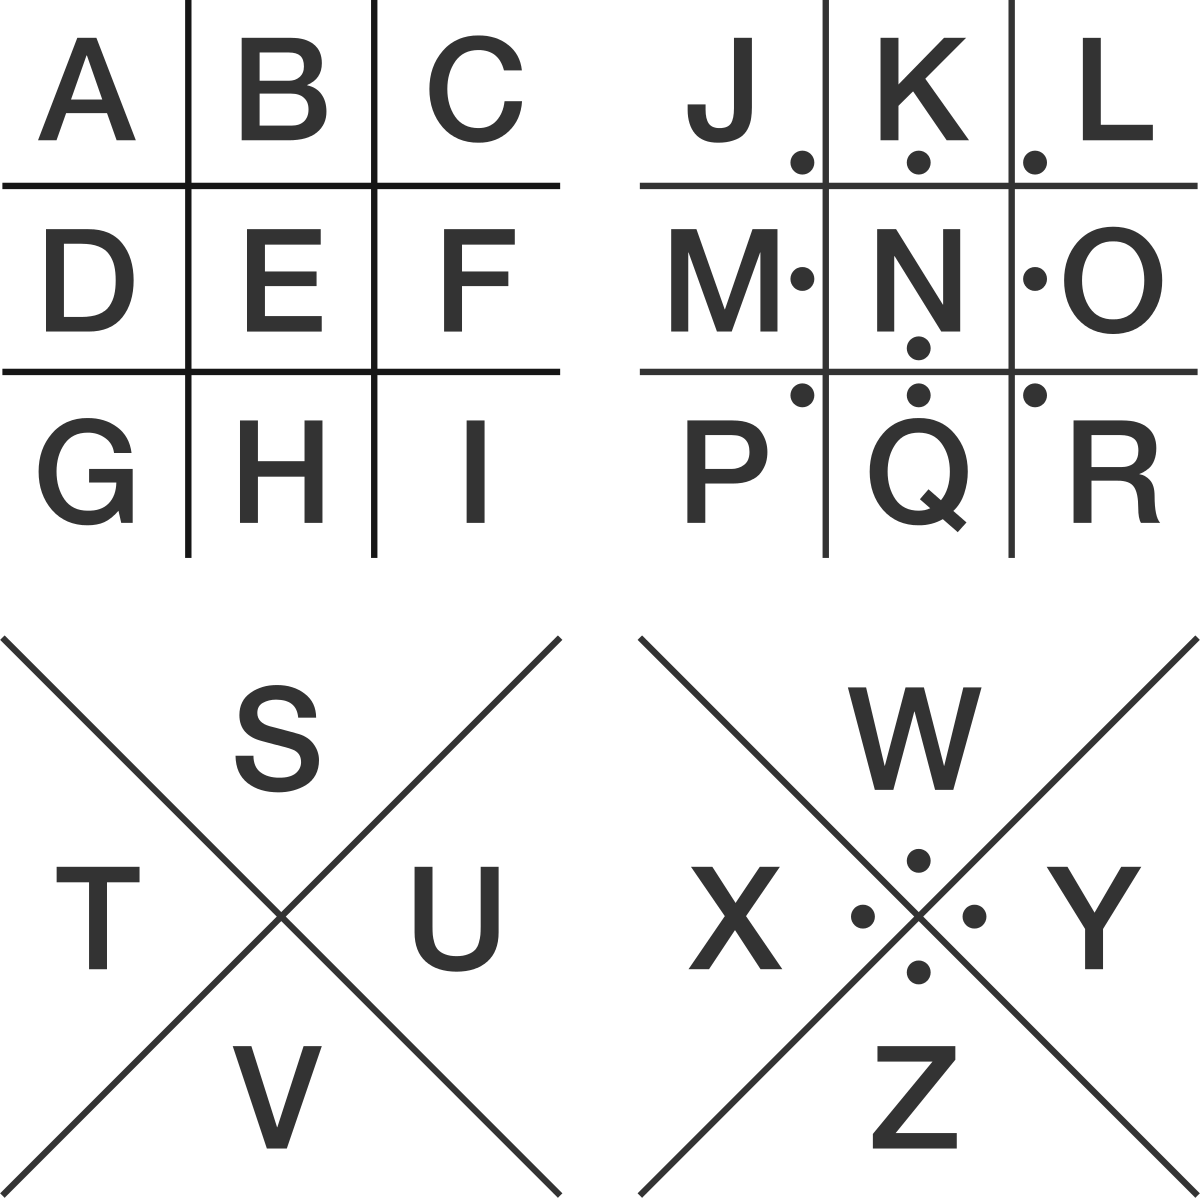 Secret messages practice problems online brilliant for example the message words encoded with the pigpen cipher is shown below biocorpaavc